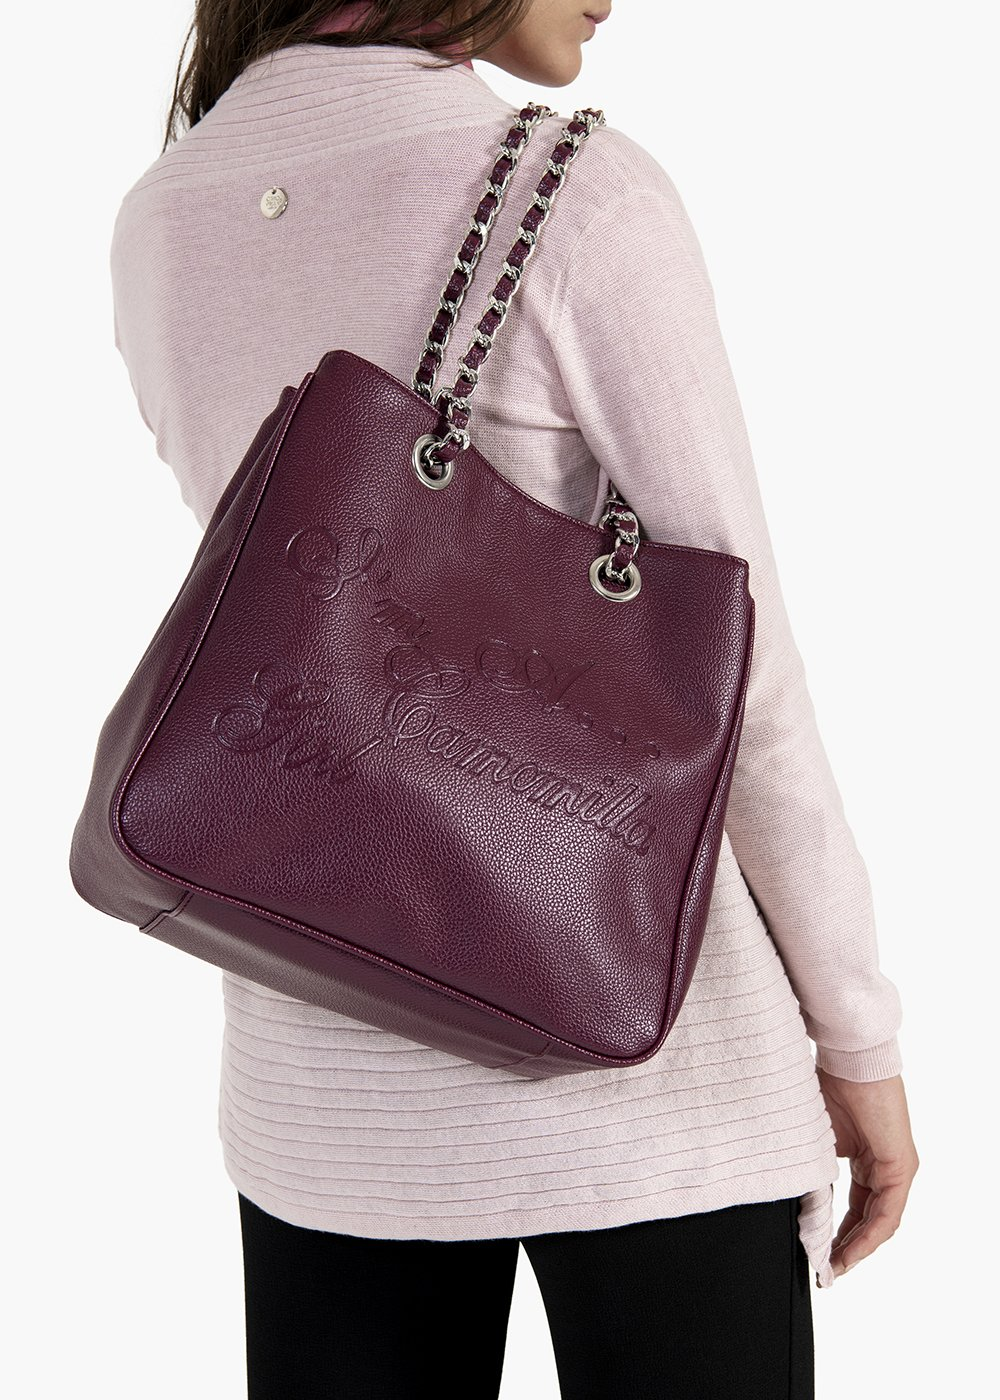 Mini Camo Girl shopping bag in eco leather with chain handles - Black cherry - Woman